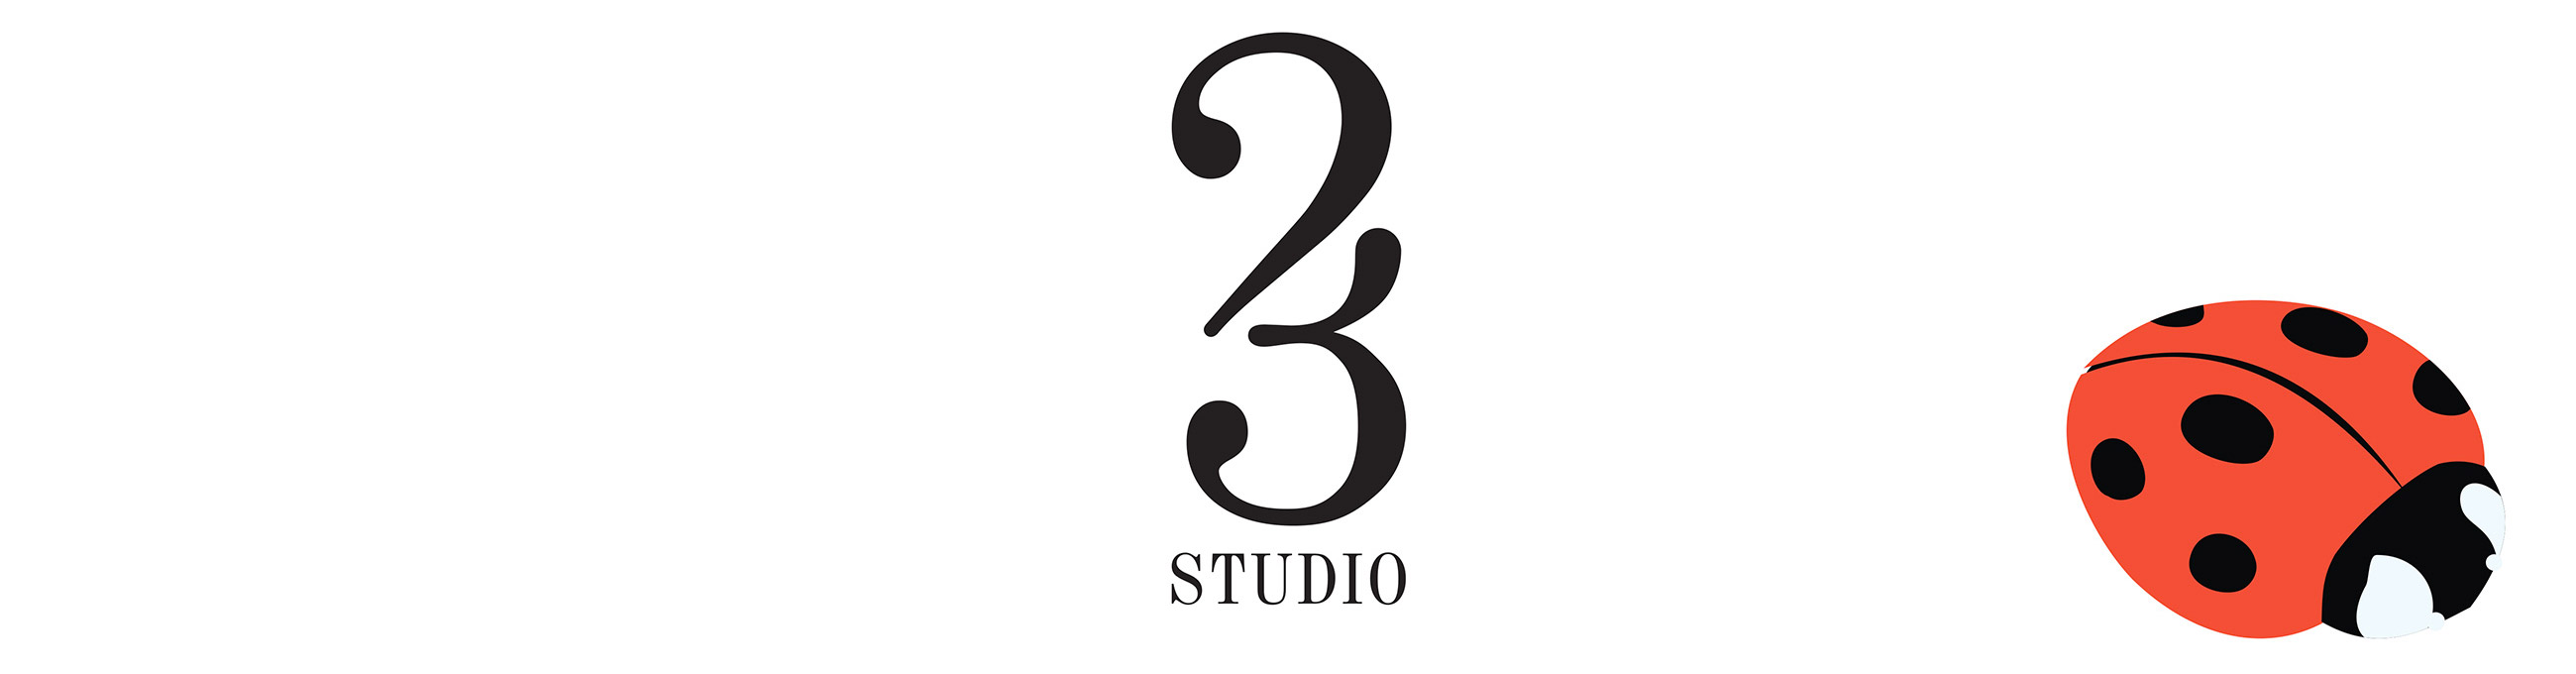 23Studio | Creative agency | Bergamo